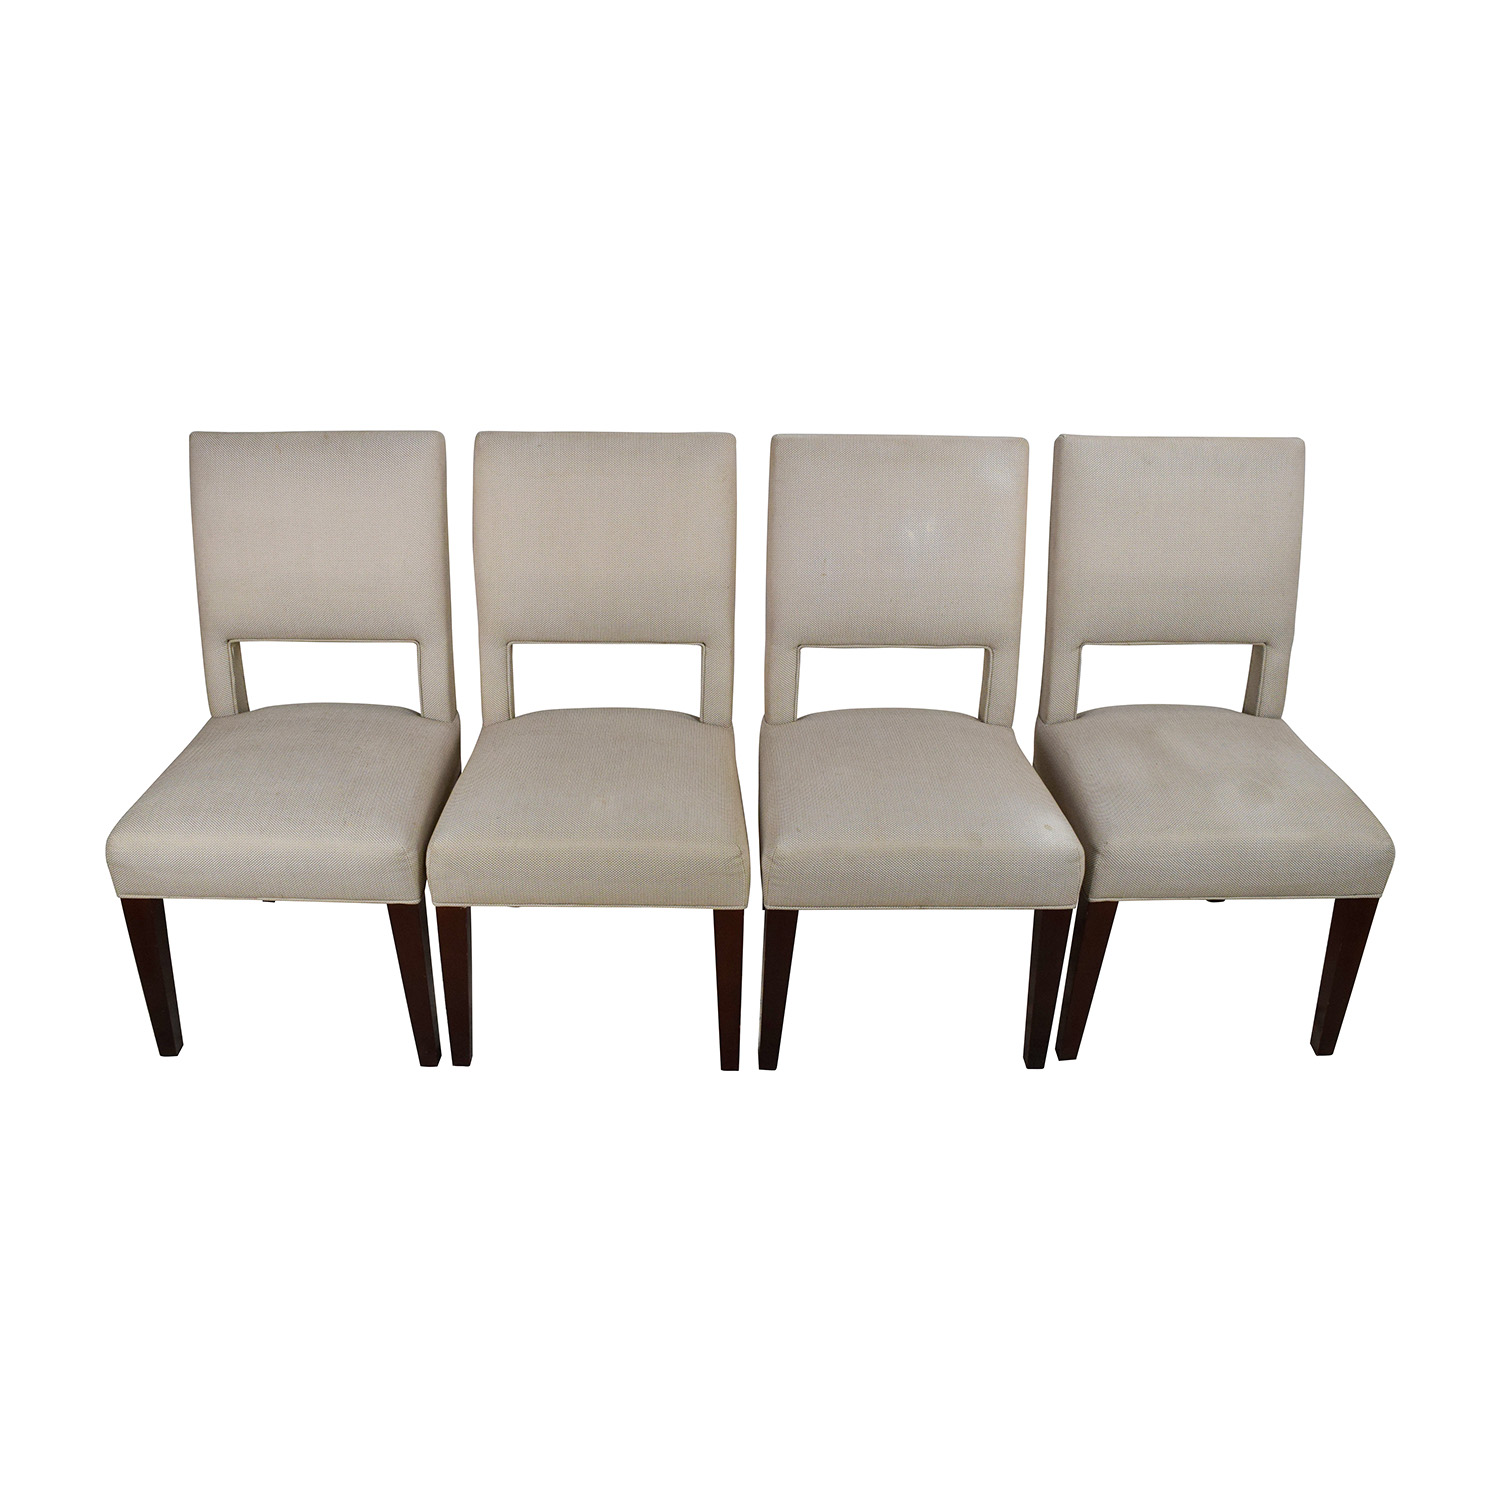 4 dining chairs for sale table furnishare buy set of dining chairs 90 off